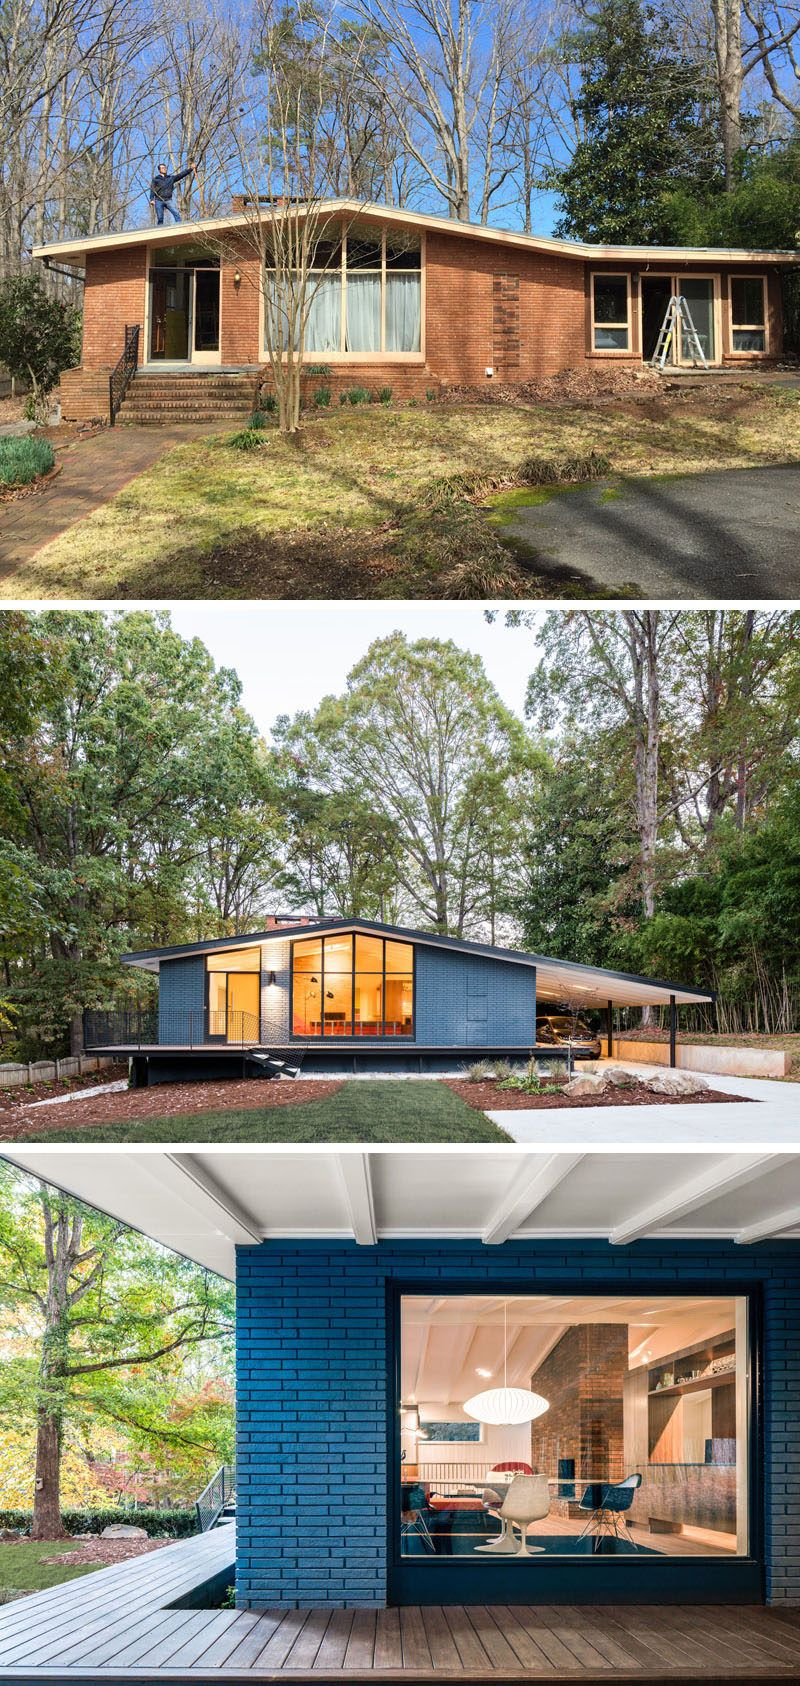 34 Samples Of Modern Houses Most Popular Exterior Design: This Mid-Century Modern House In North Carolina Received A Fresh Update